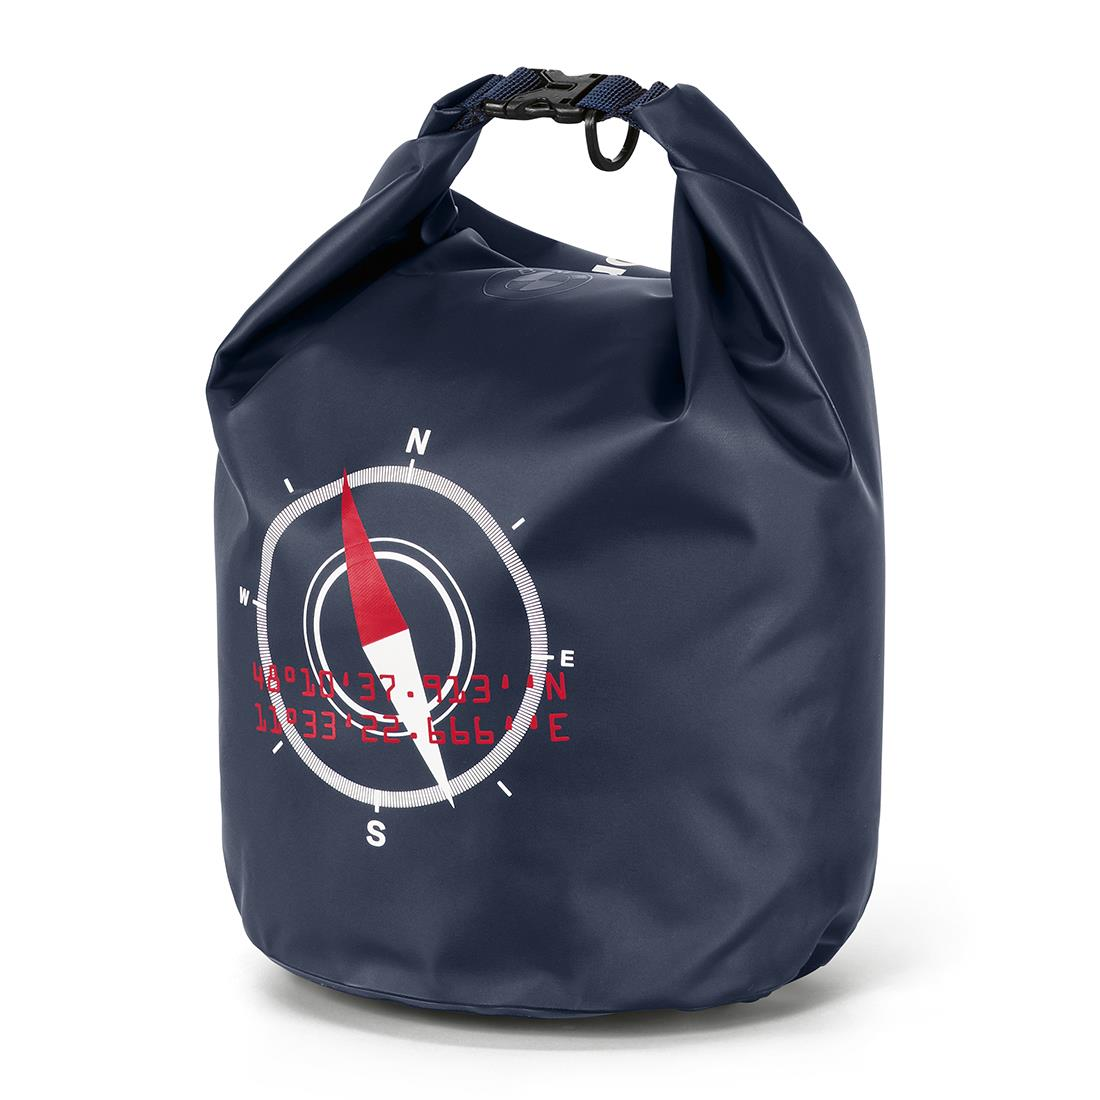 BMW Yachtsport Small Dry Bag